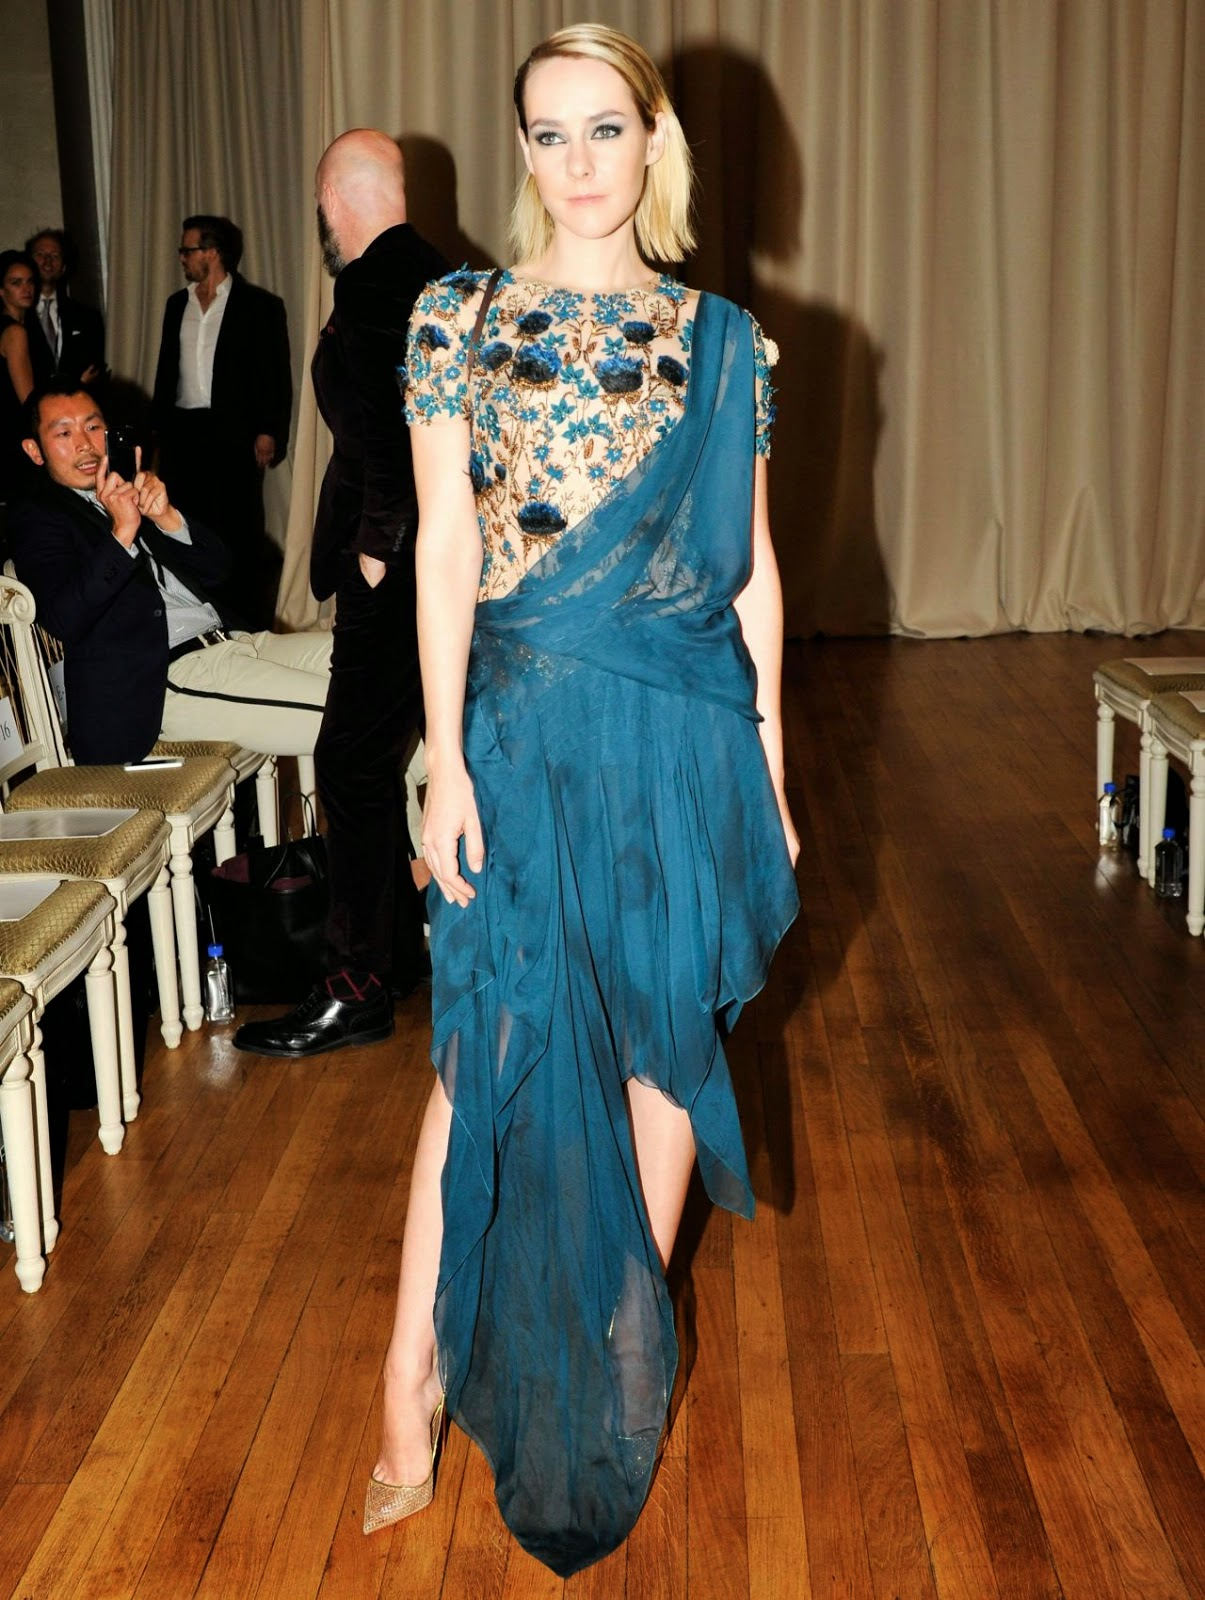 Jena Malone dazzles at the Marchesa Spring 2015 London Fashion Week Show